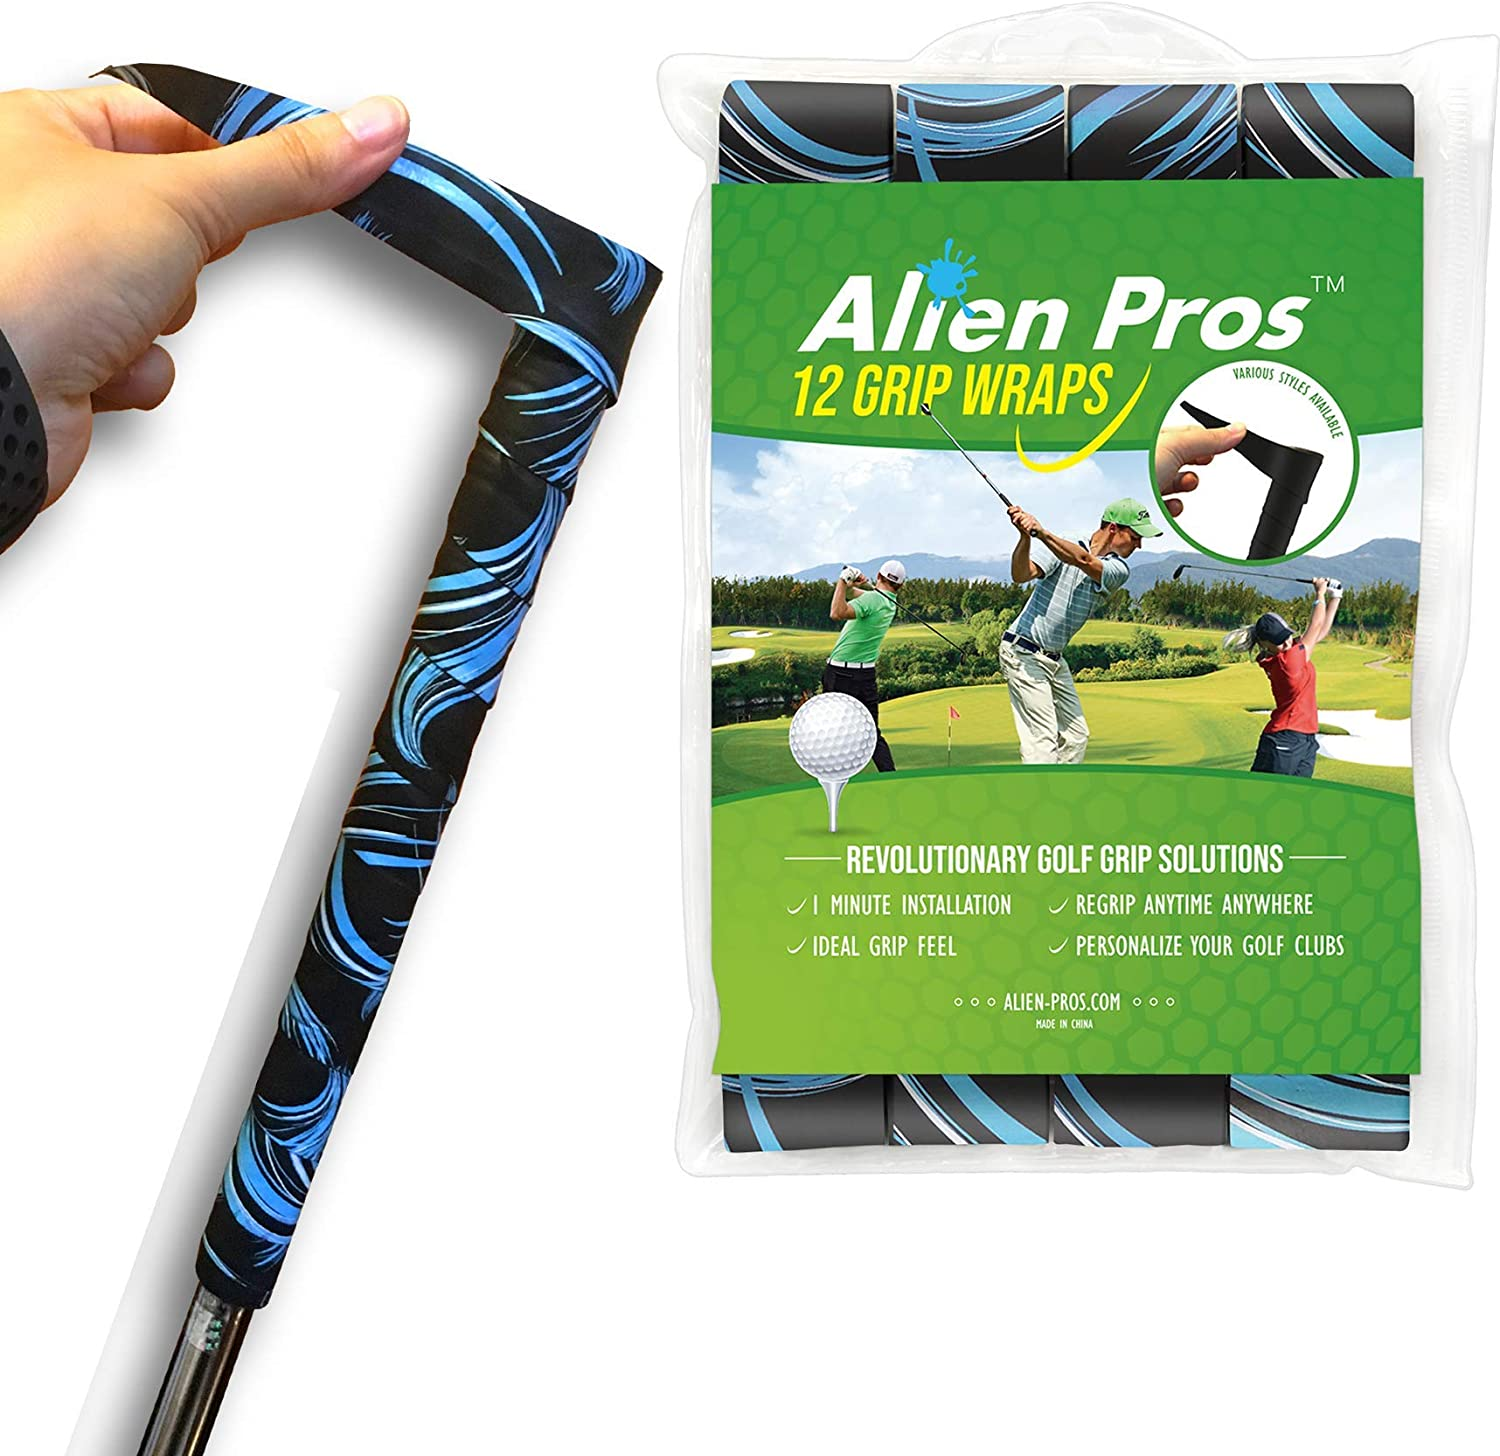 7 Best Golf Grips for Drivers- Reviews and Buying Guide 4